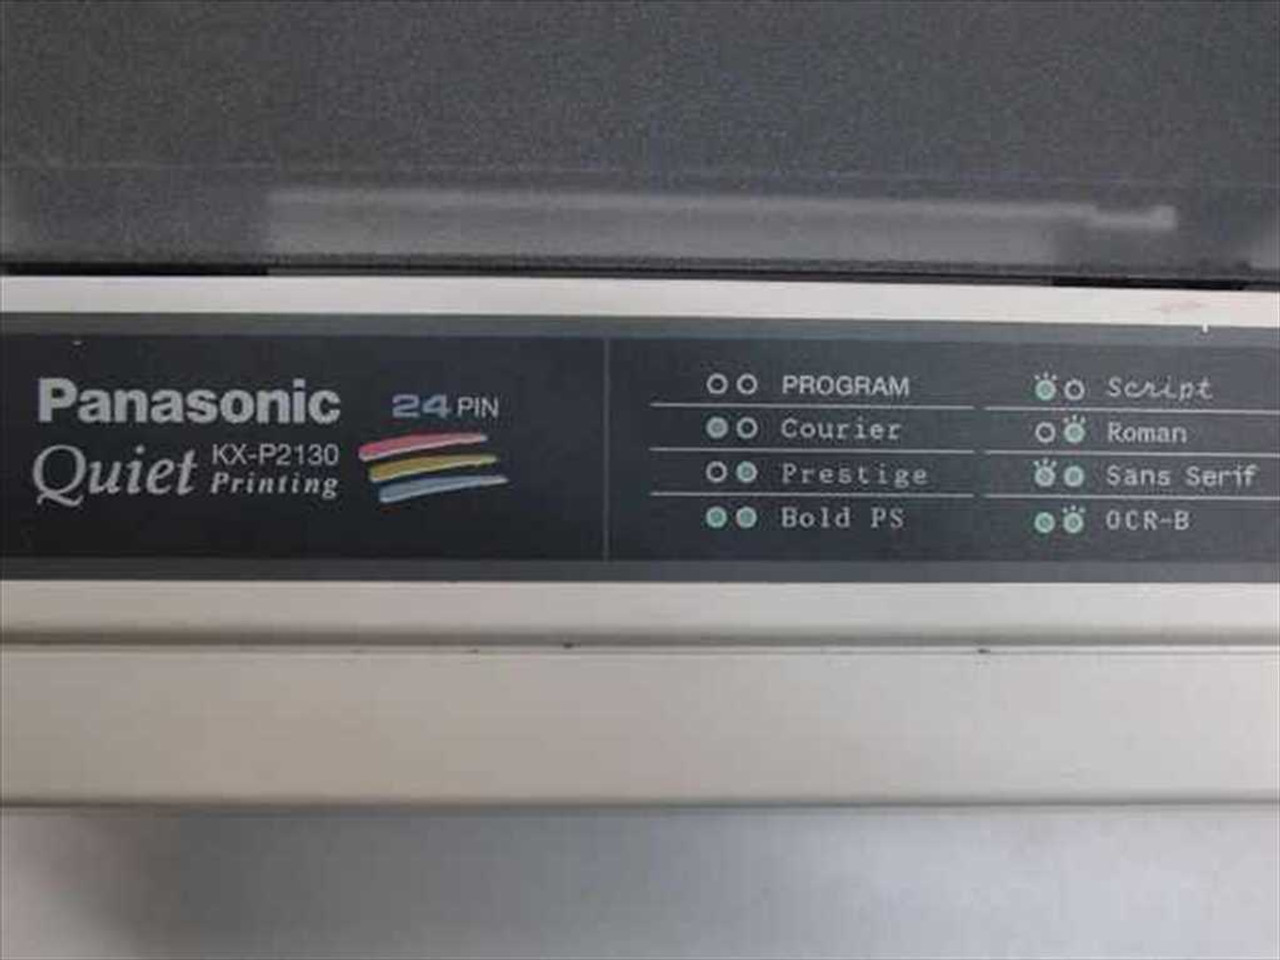 PANASONIC KX P2130 WINDOWS 7 64 DRIVER